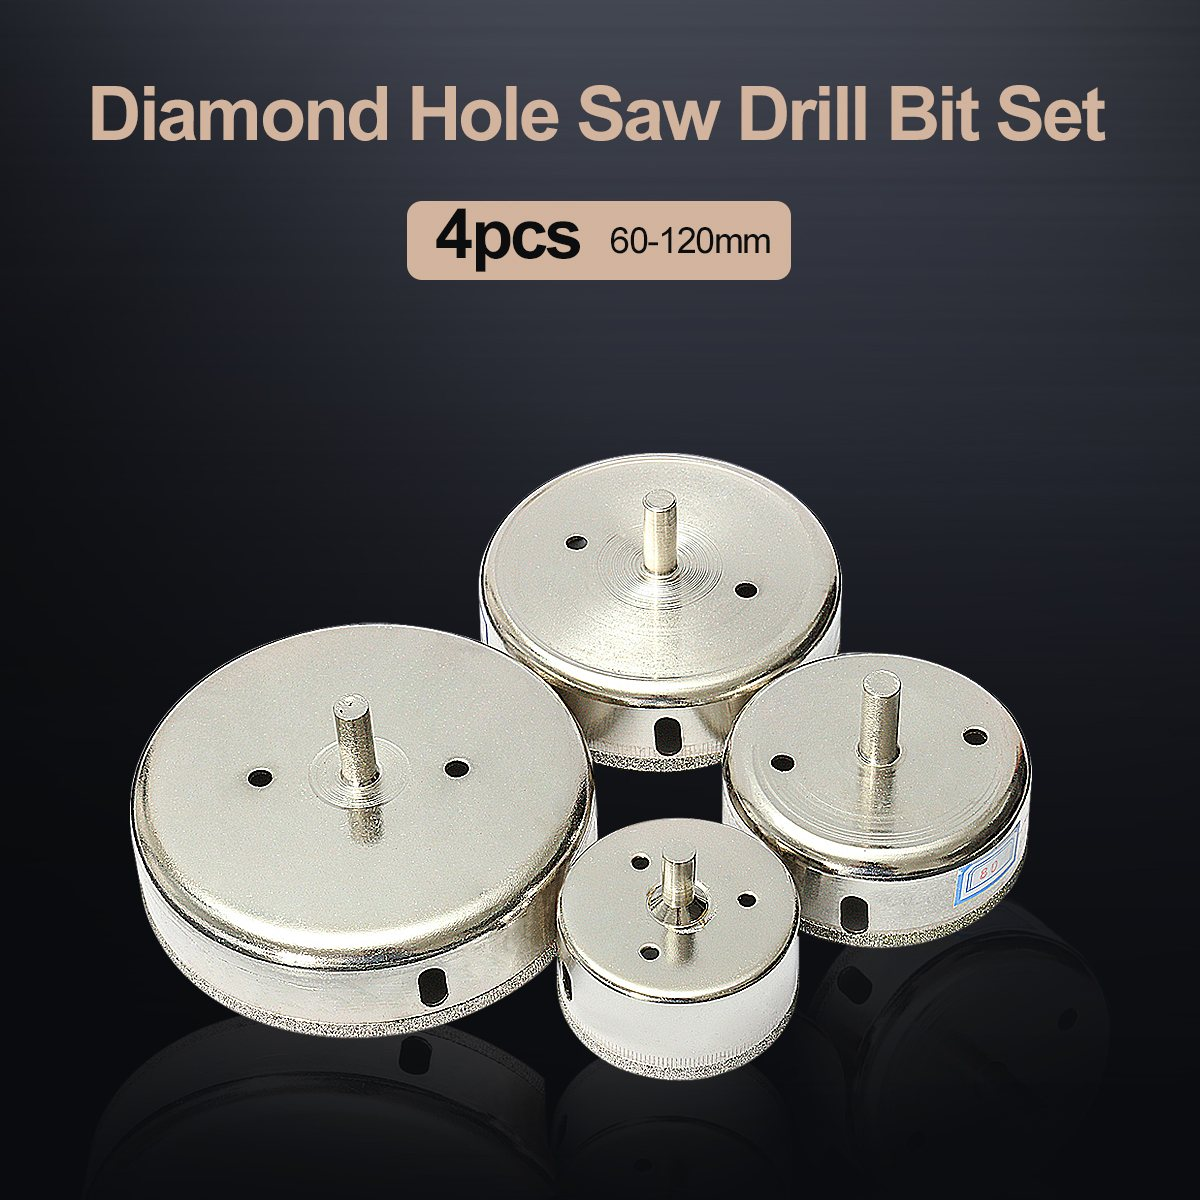 4pcs 60/80/100/120 mm Diamond Hole Saw Tile Set Drill Bit for Ceramic Glass Tile Cutting Porcelain Marble Drill Bit diamond coated hole saw set core drill bit tile marble glass ceramic porcelain